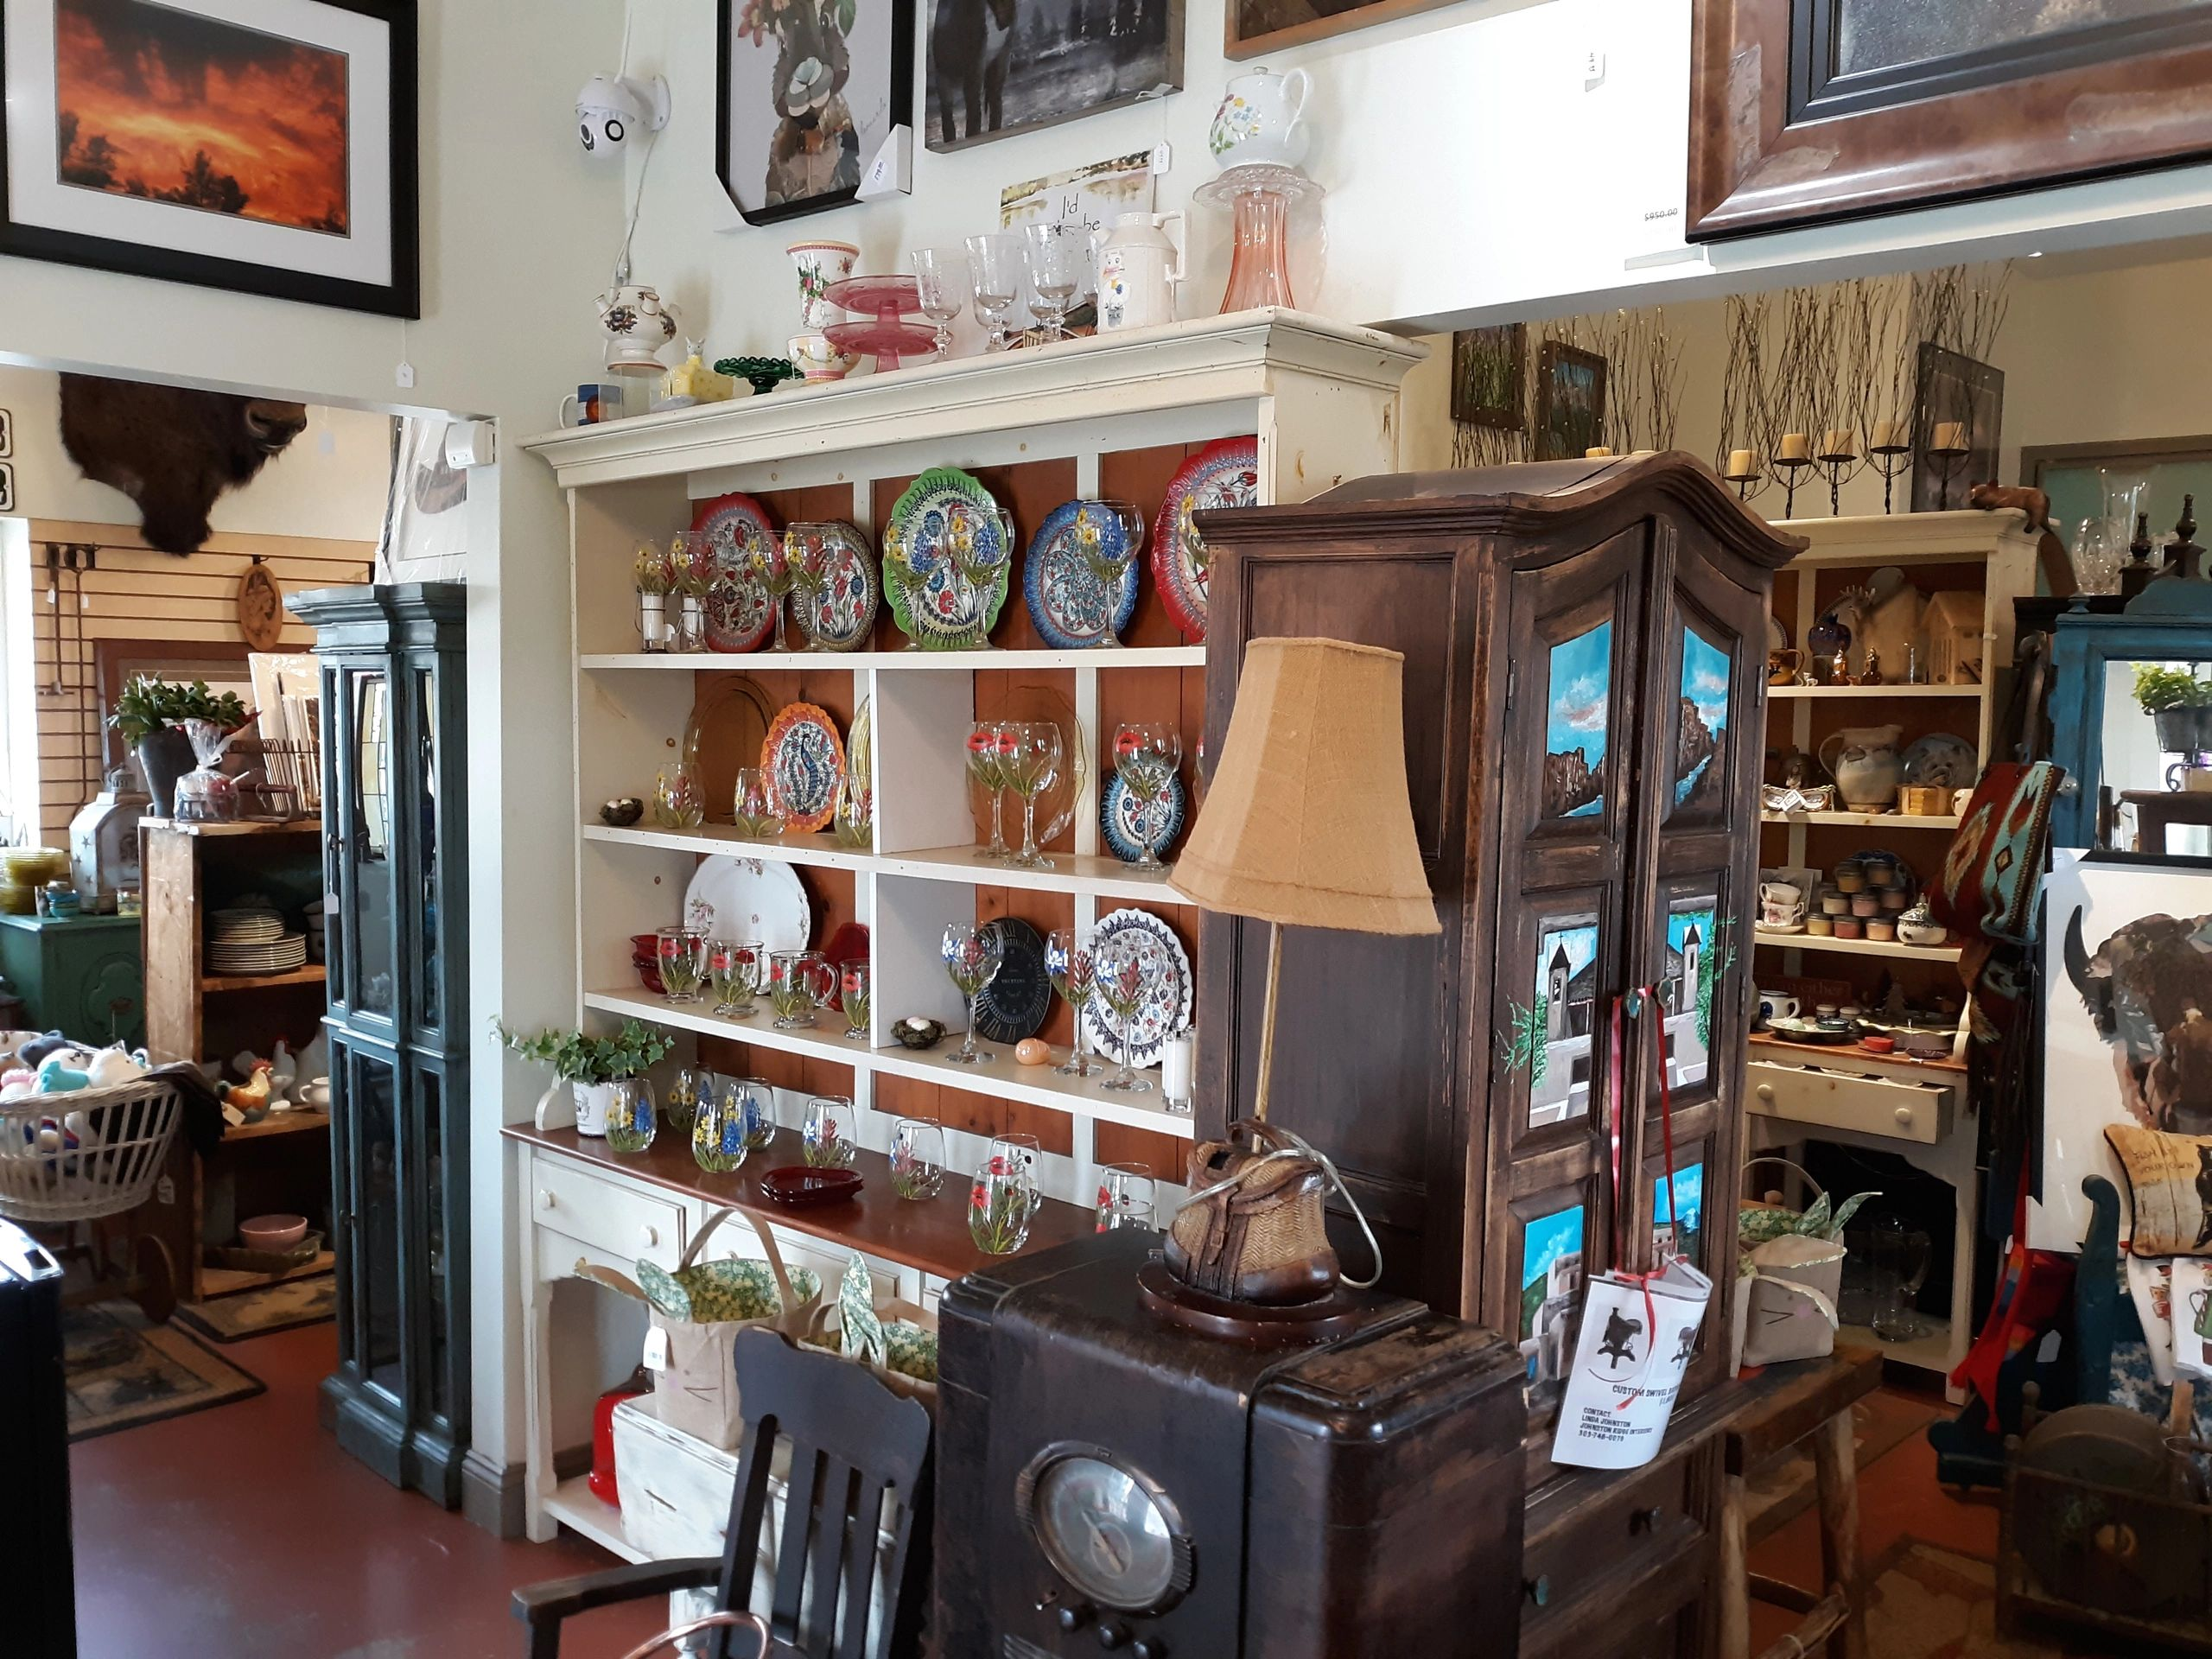 Unique collectables, gifts and furnishings new, vintage and antique